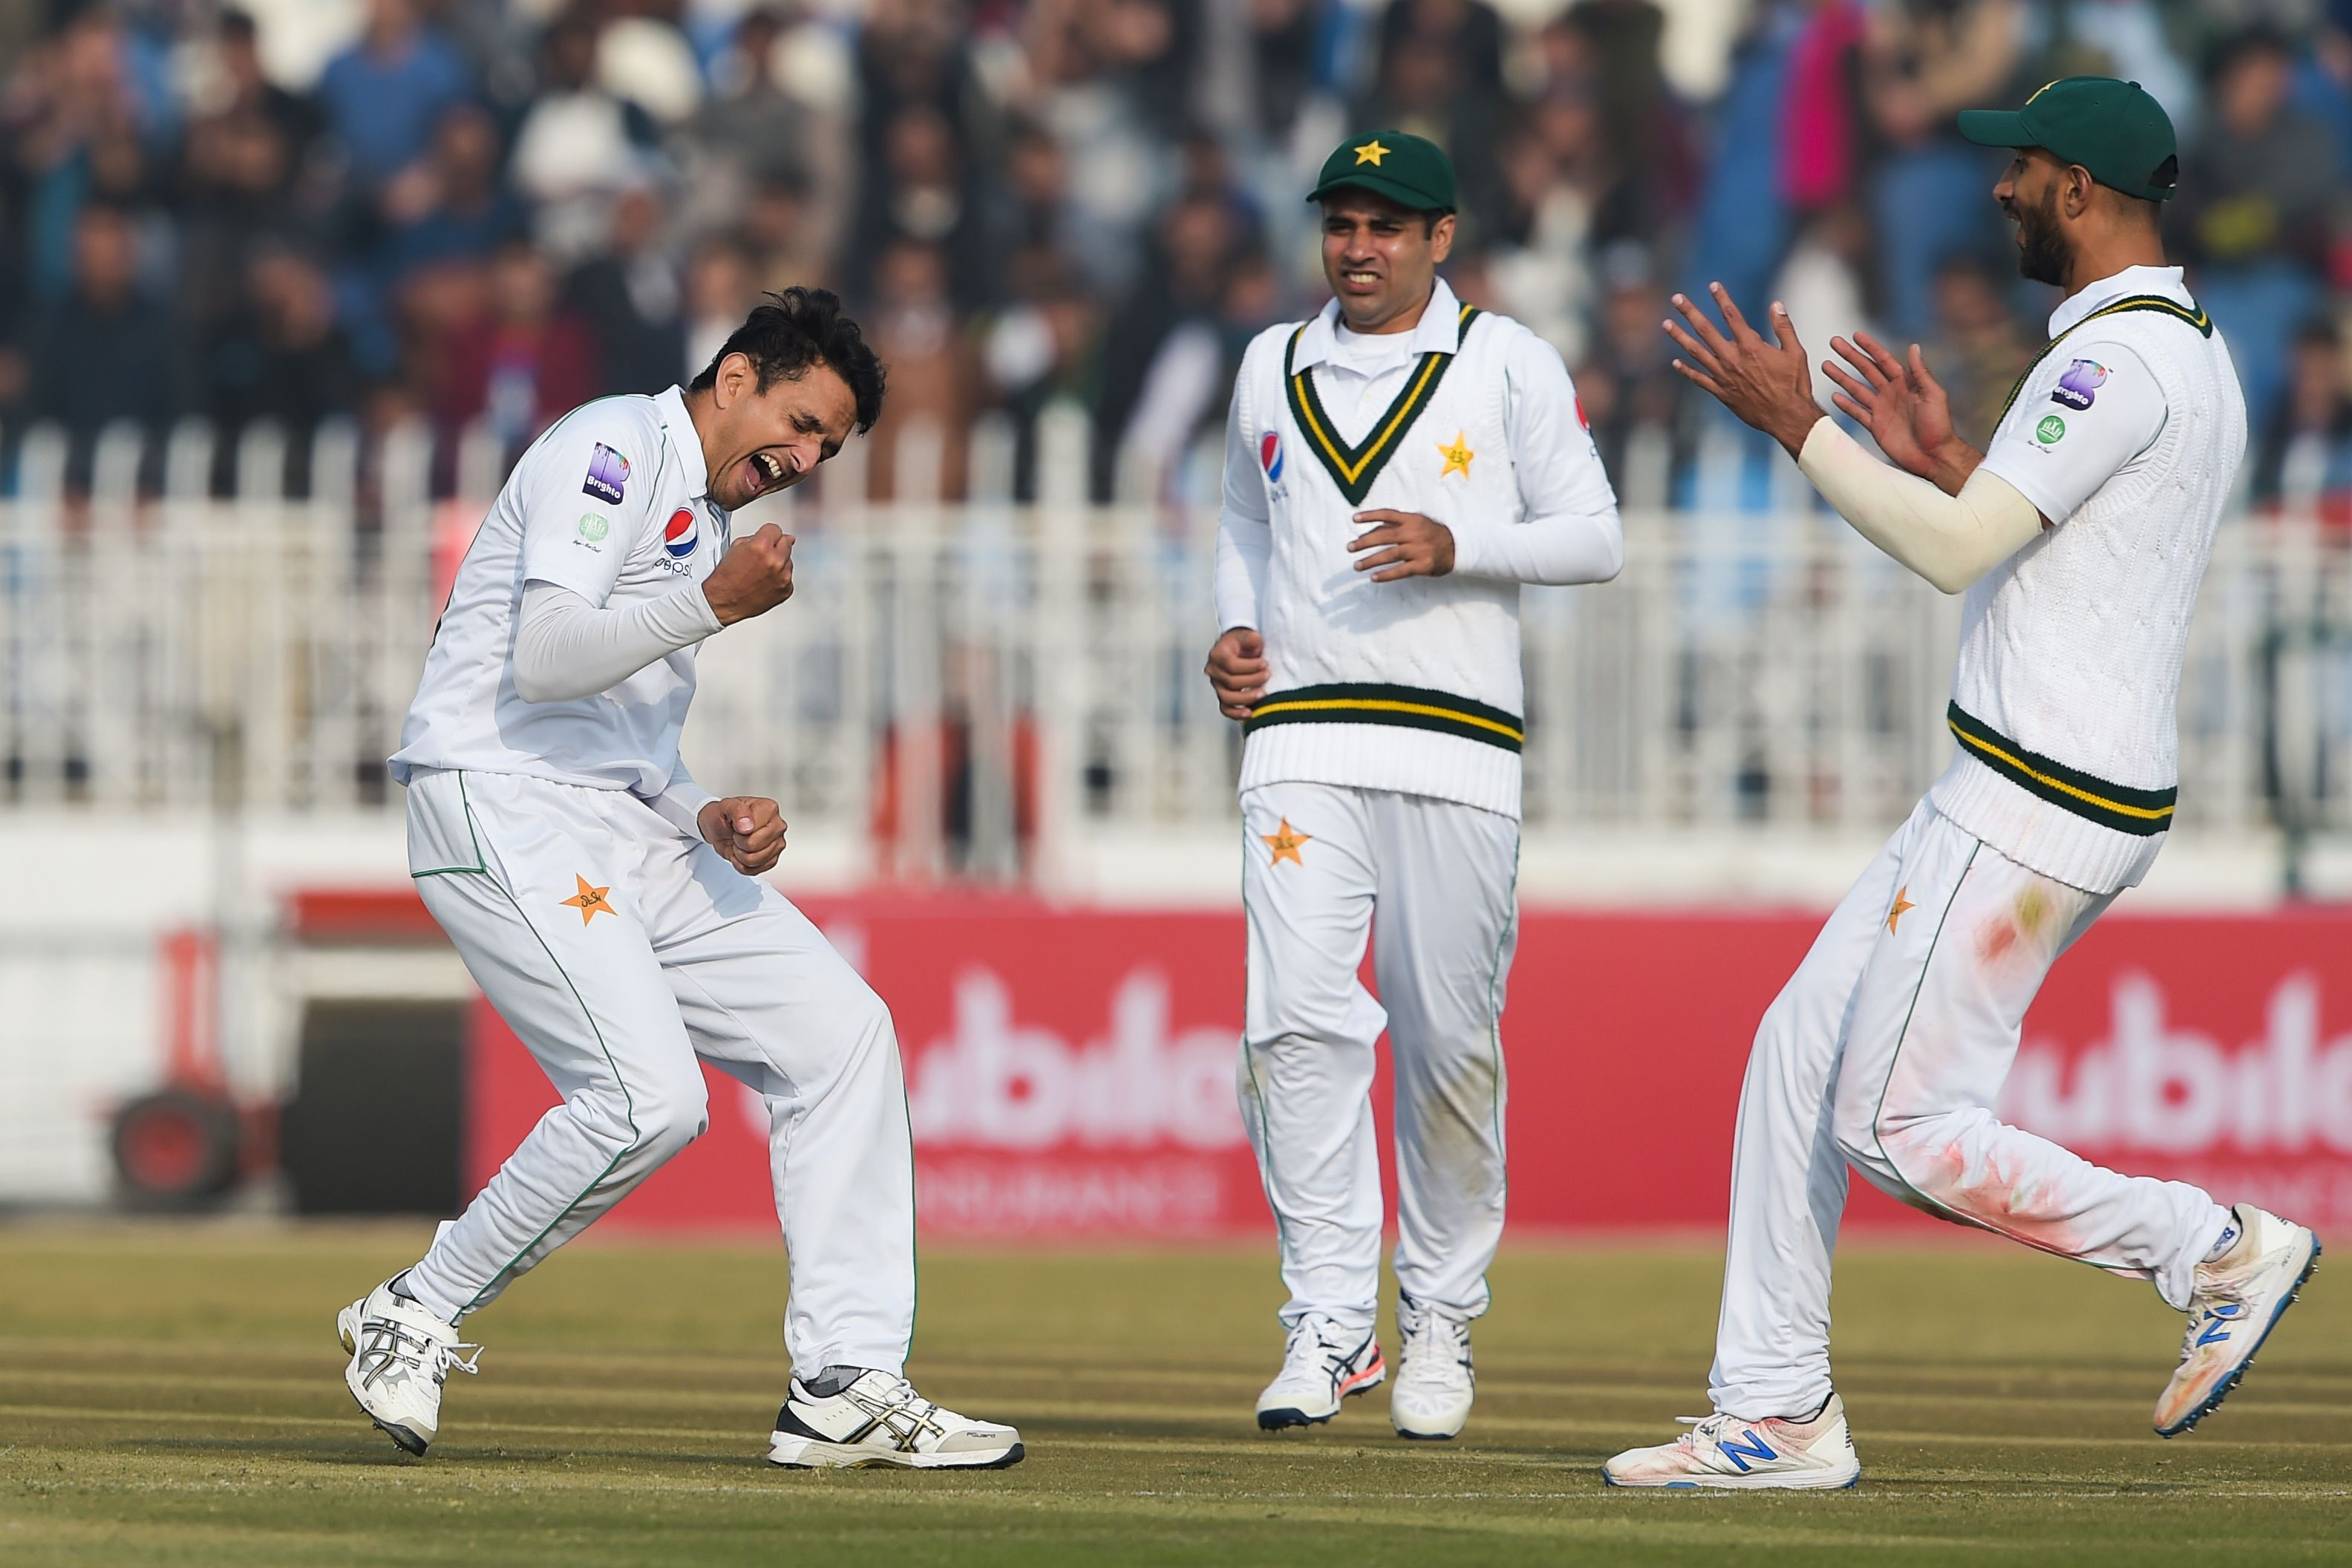 Pakistan pacers shine as Tests come home, but Sri Lanka hold steady